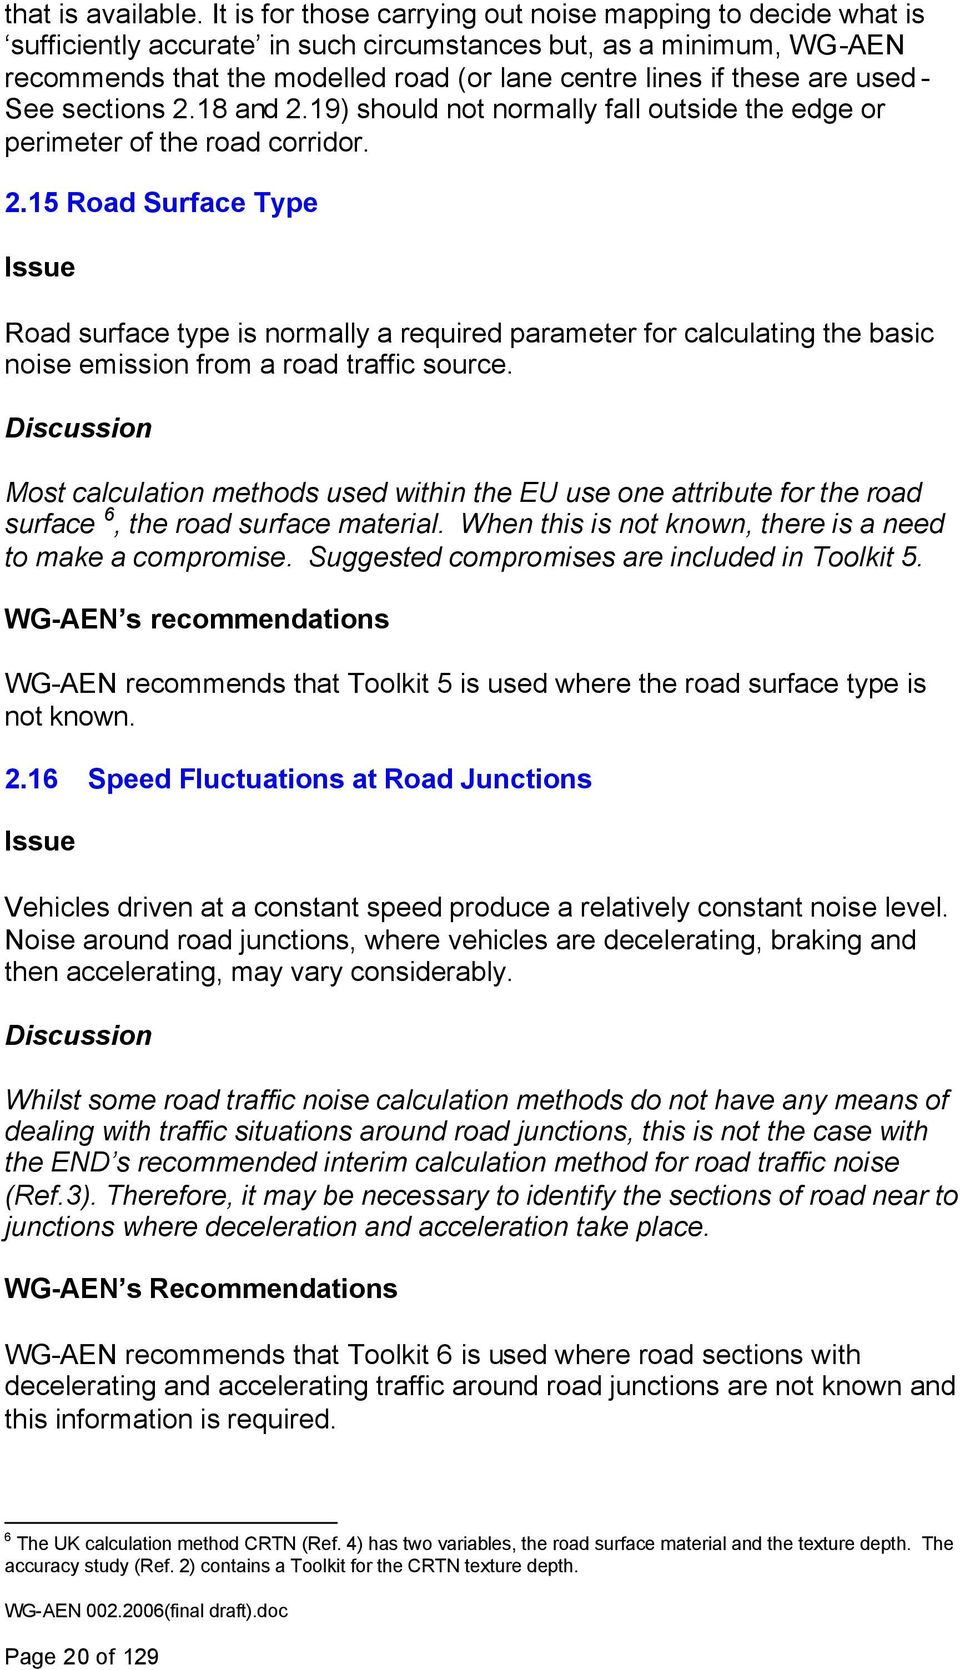 used - See sections 2.18 and 2.19) should not normally fall outside the edge or perimeter of the road corridor. 2.15 Road Surface Type Issue Road surface type is normally a required parameter for calculating the basic noise emission from a road traffic source.